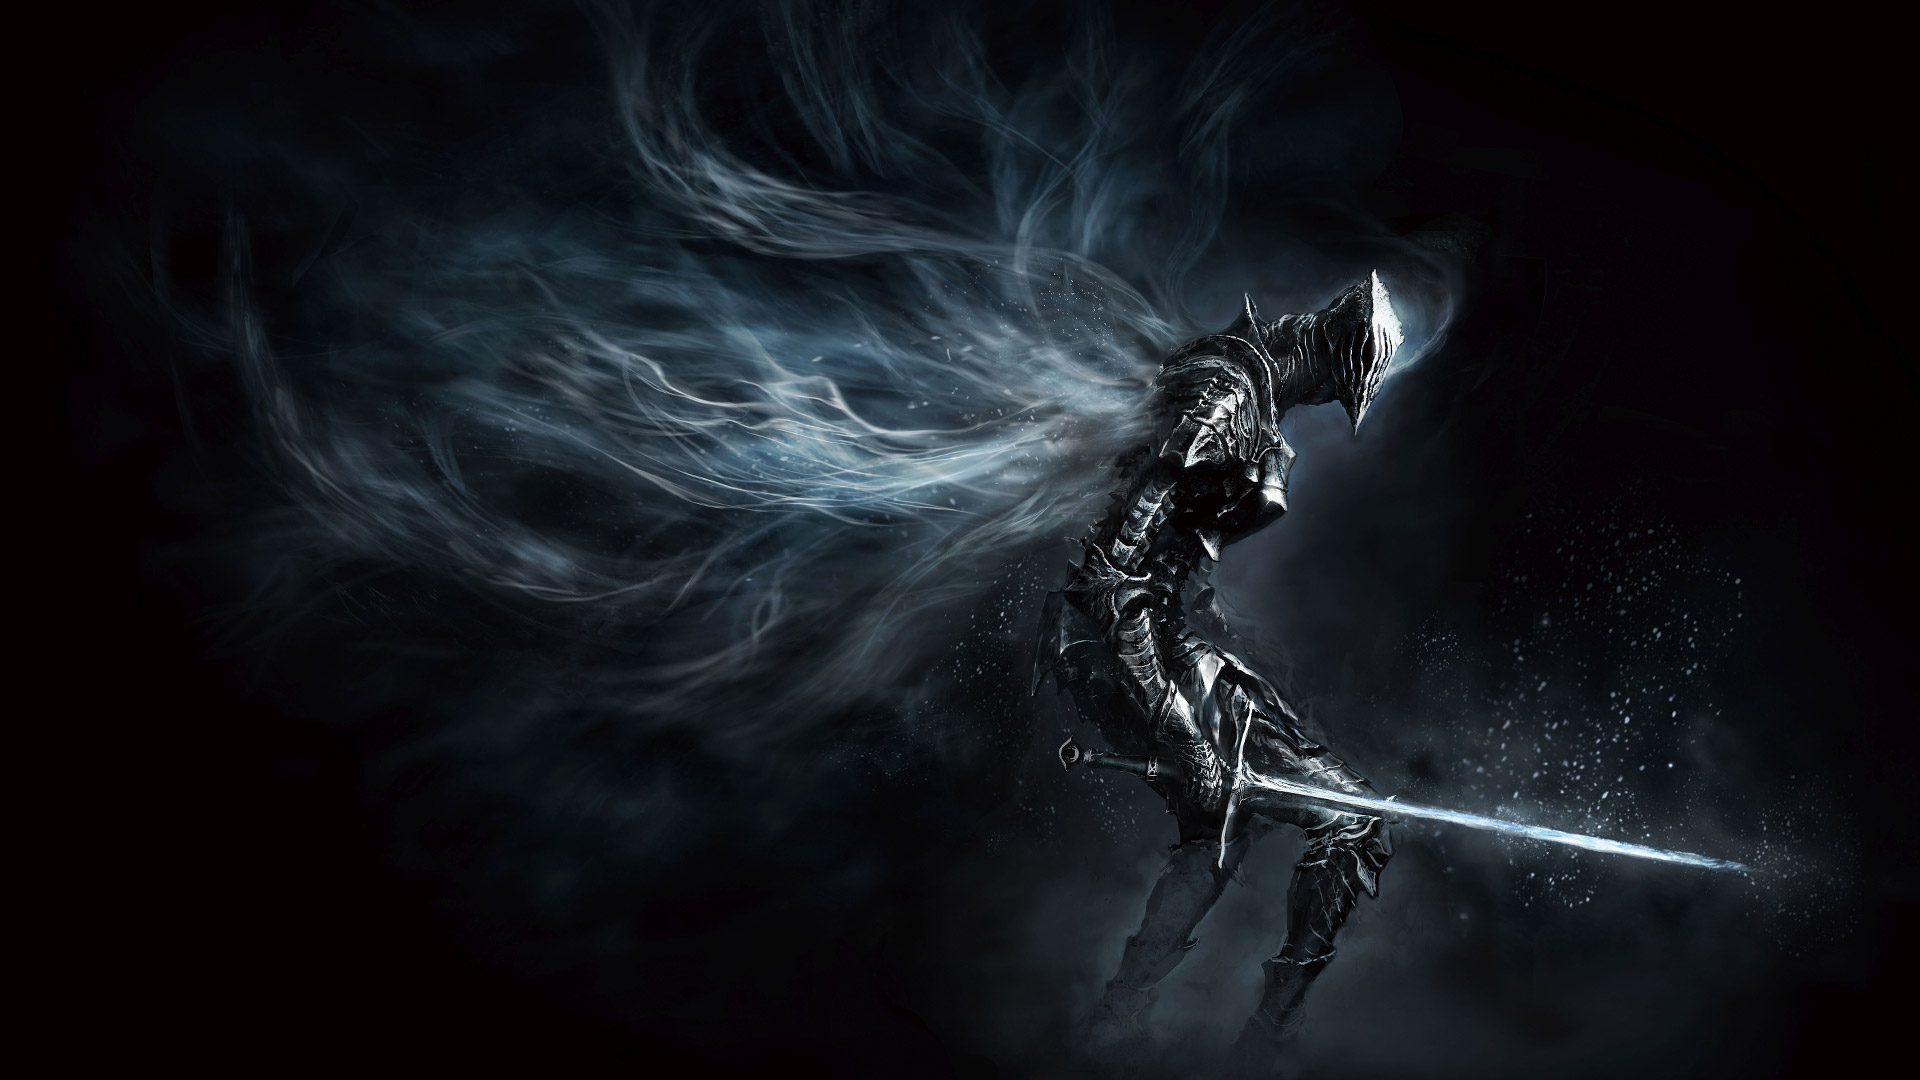 Fonds dcran Dark Souls 3 tous les wallpapers Dark Souls 3 1920x1080